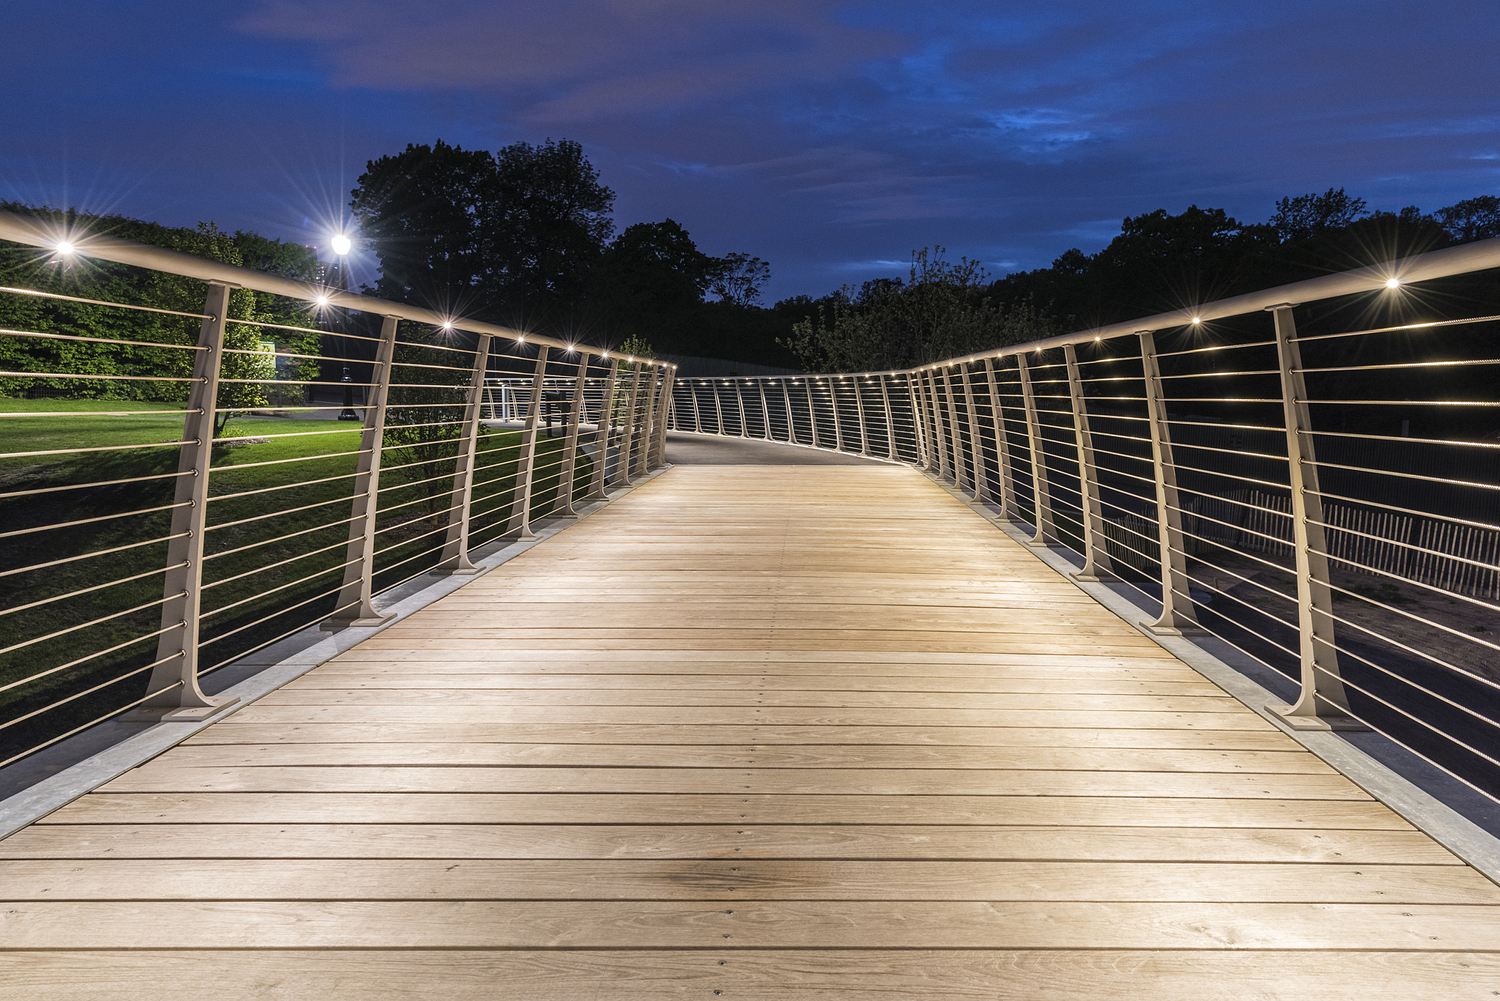 Foot bridge at night, New York Botanical Gardens